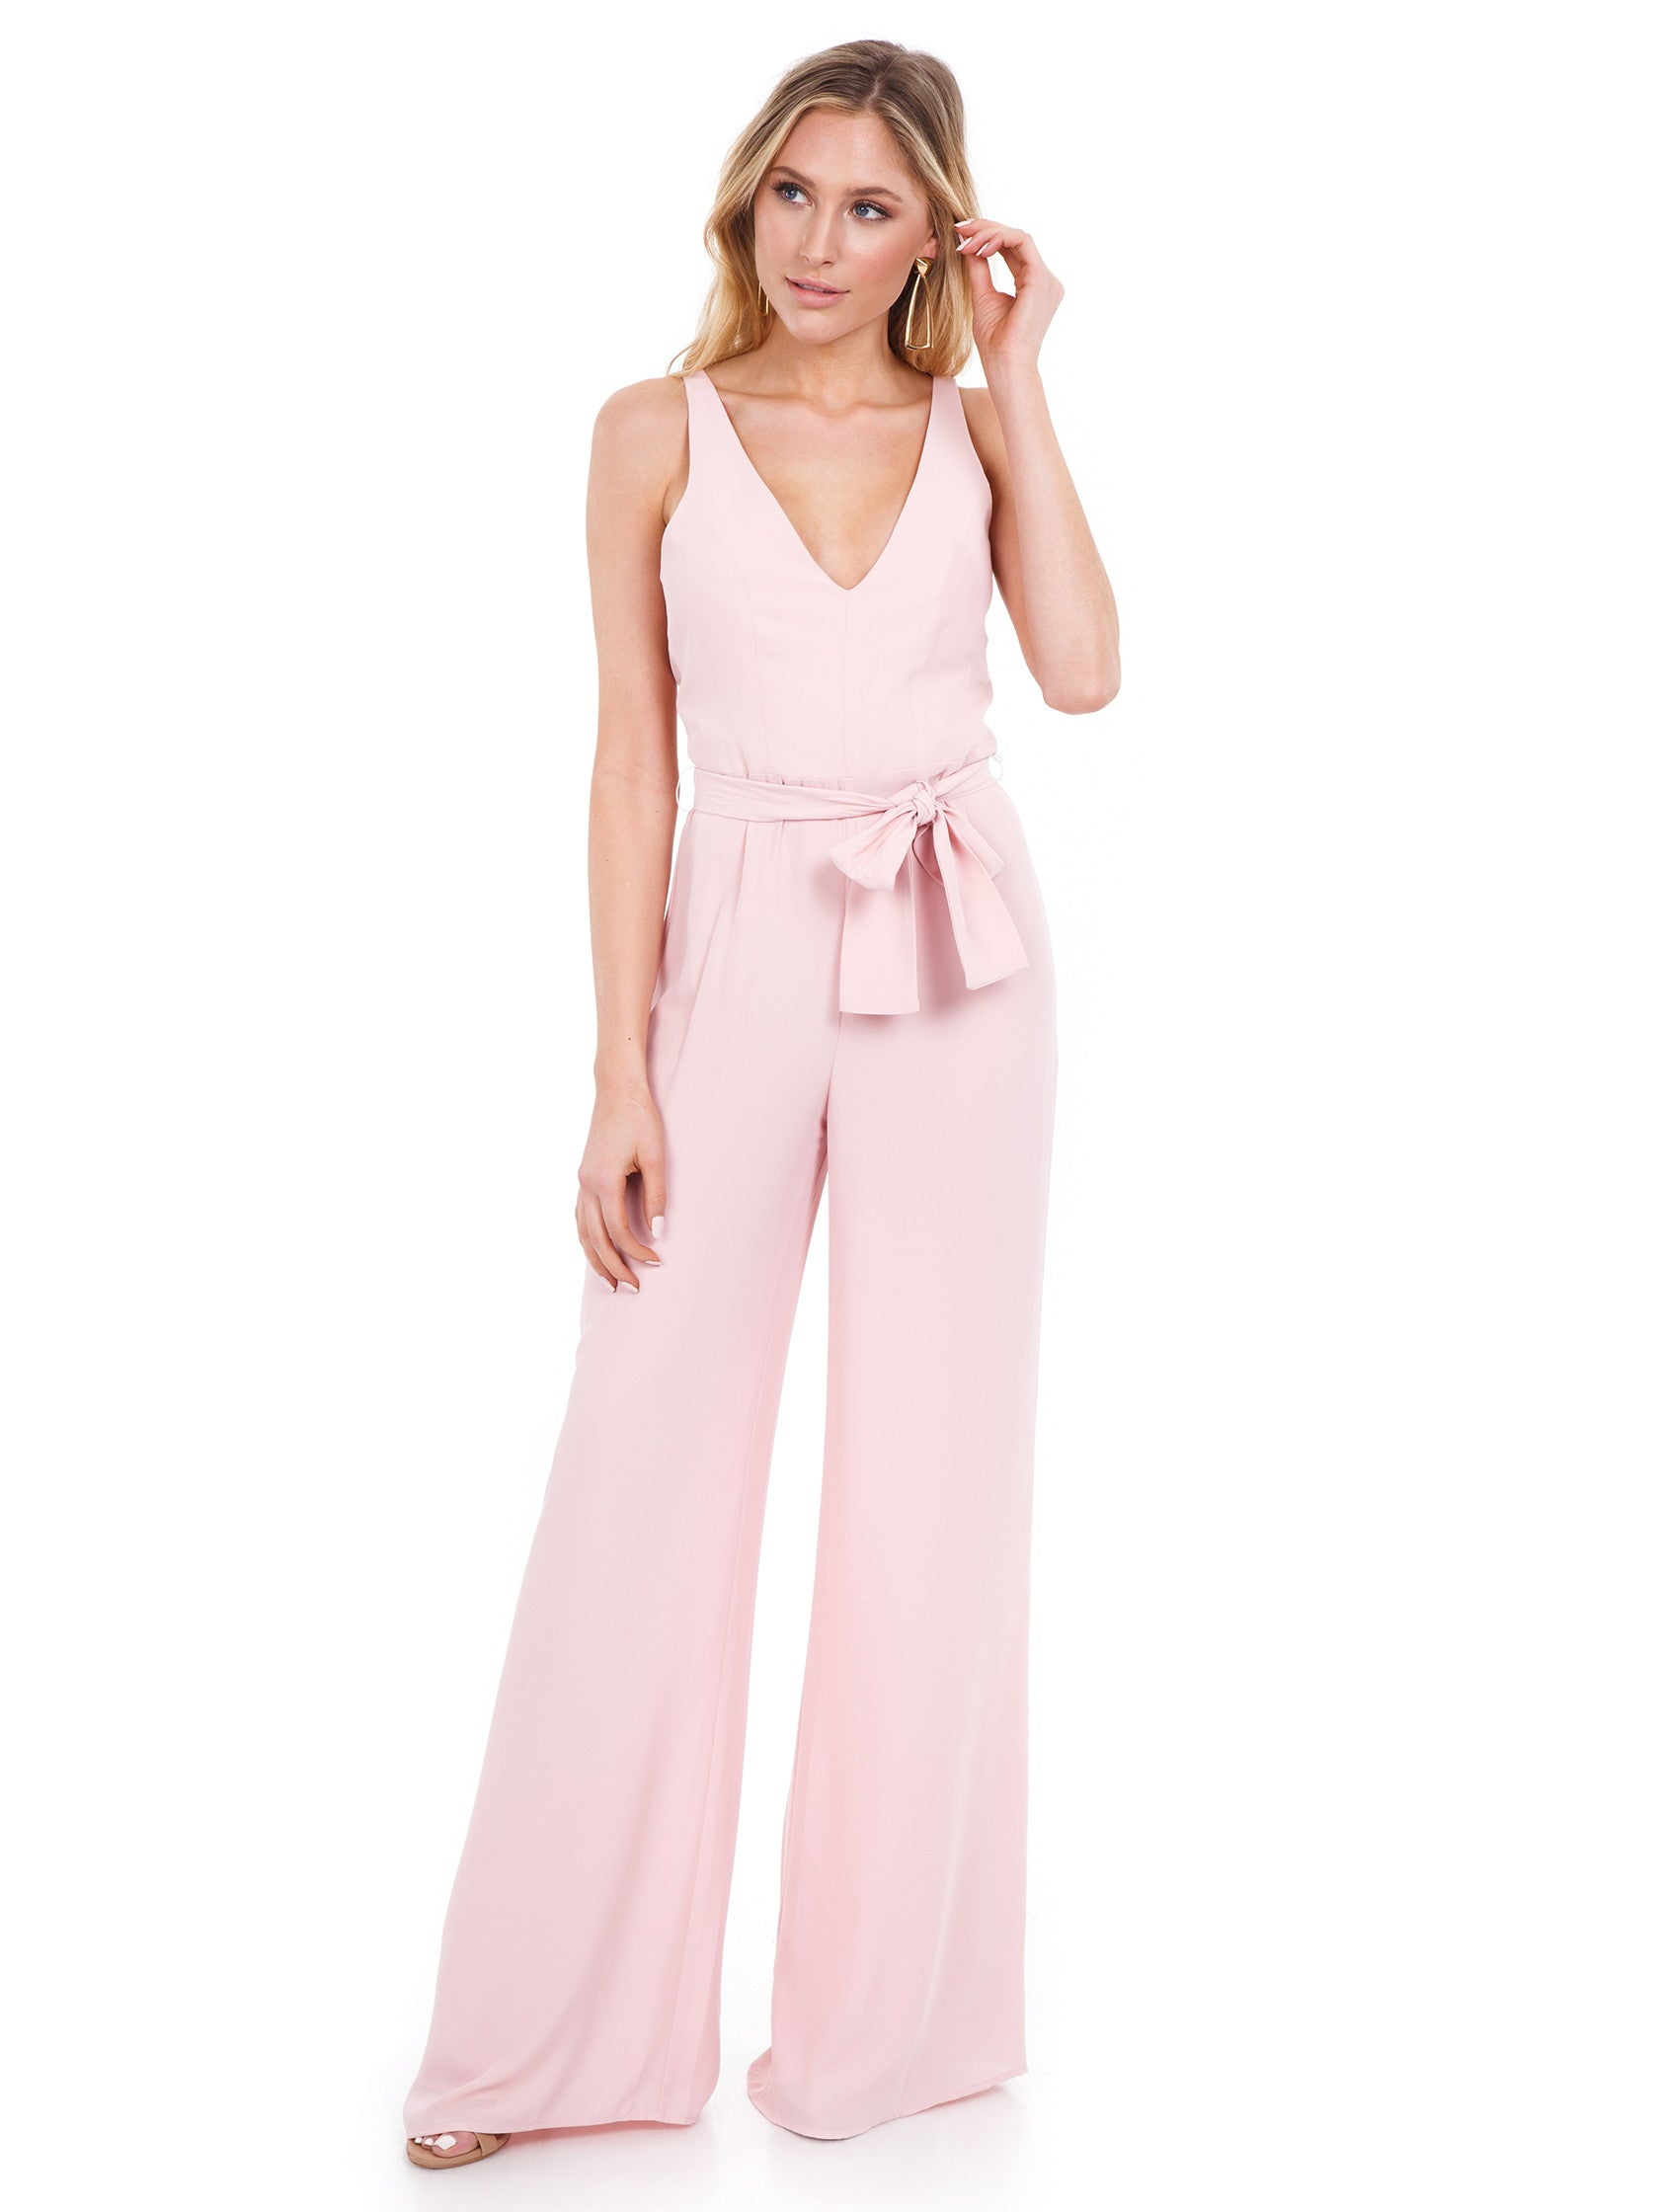 Girl outfit in a jumpsuit rental from Amanda Uprichard called Lamar Jumpsuit